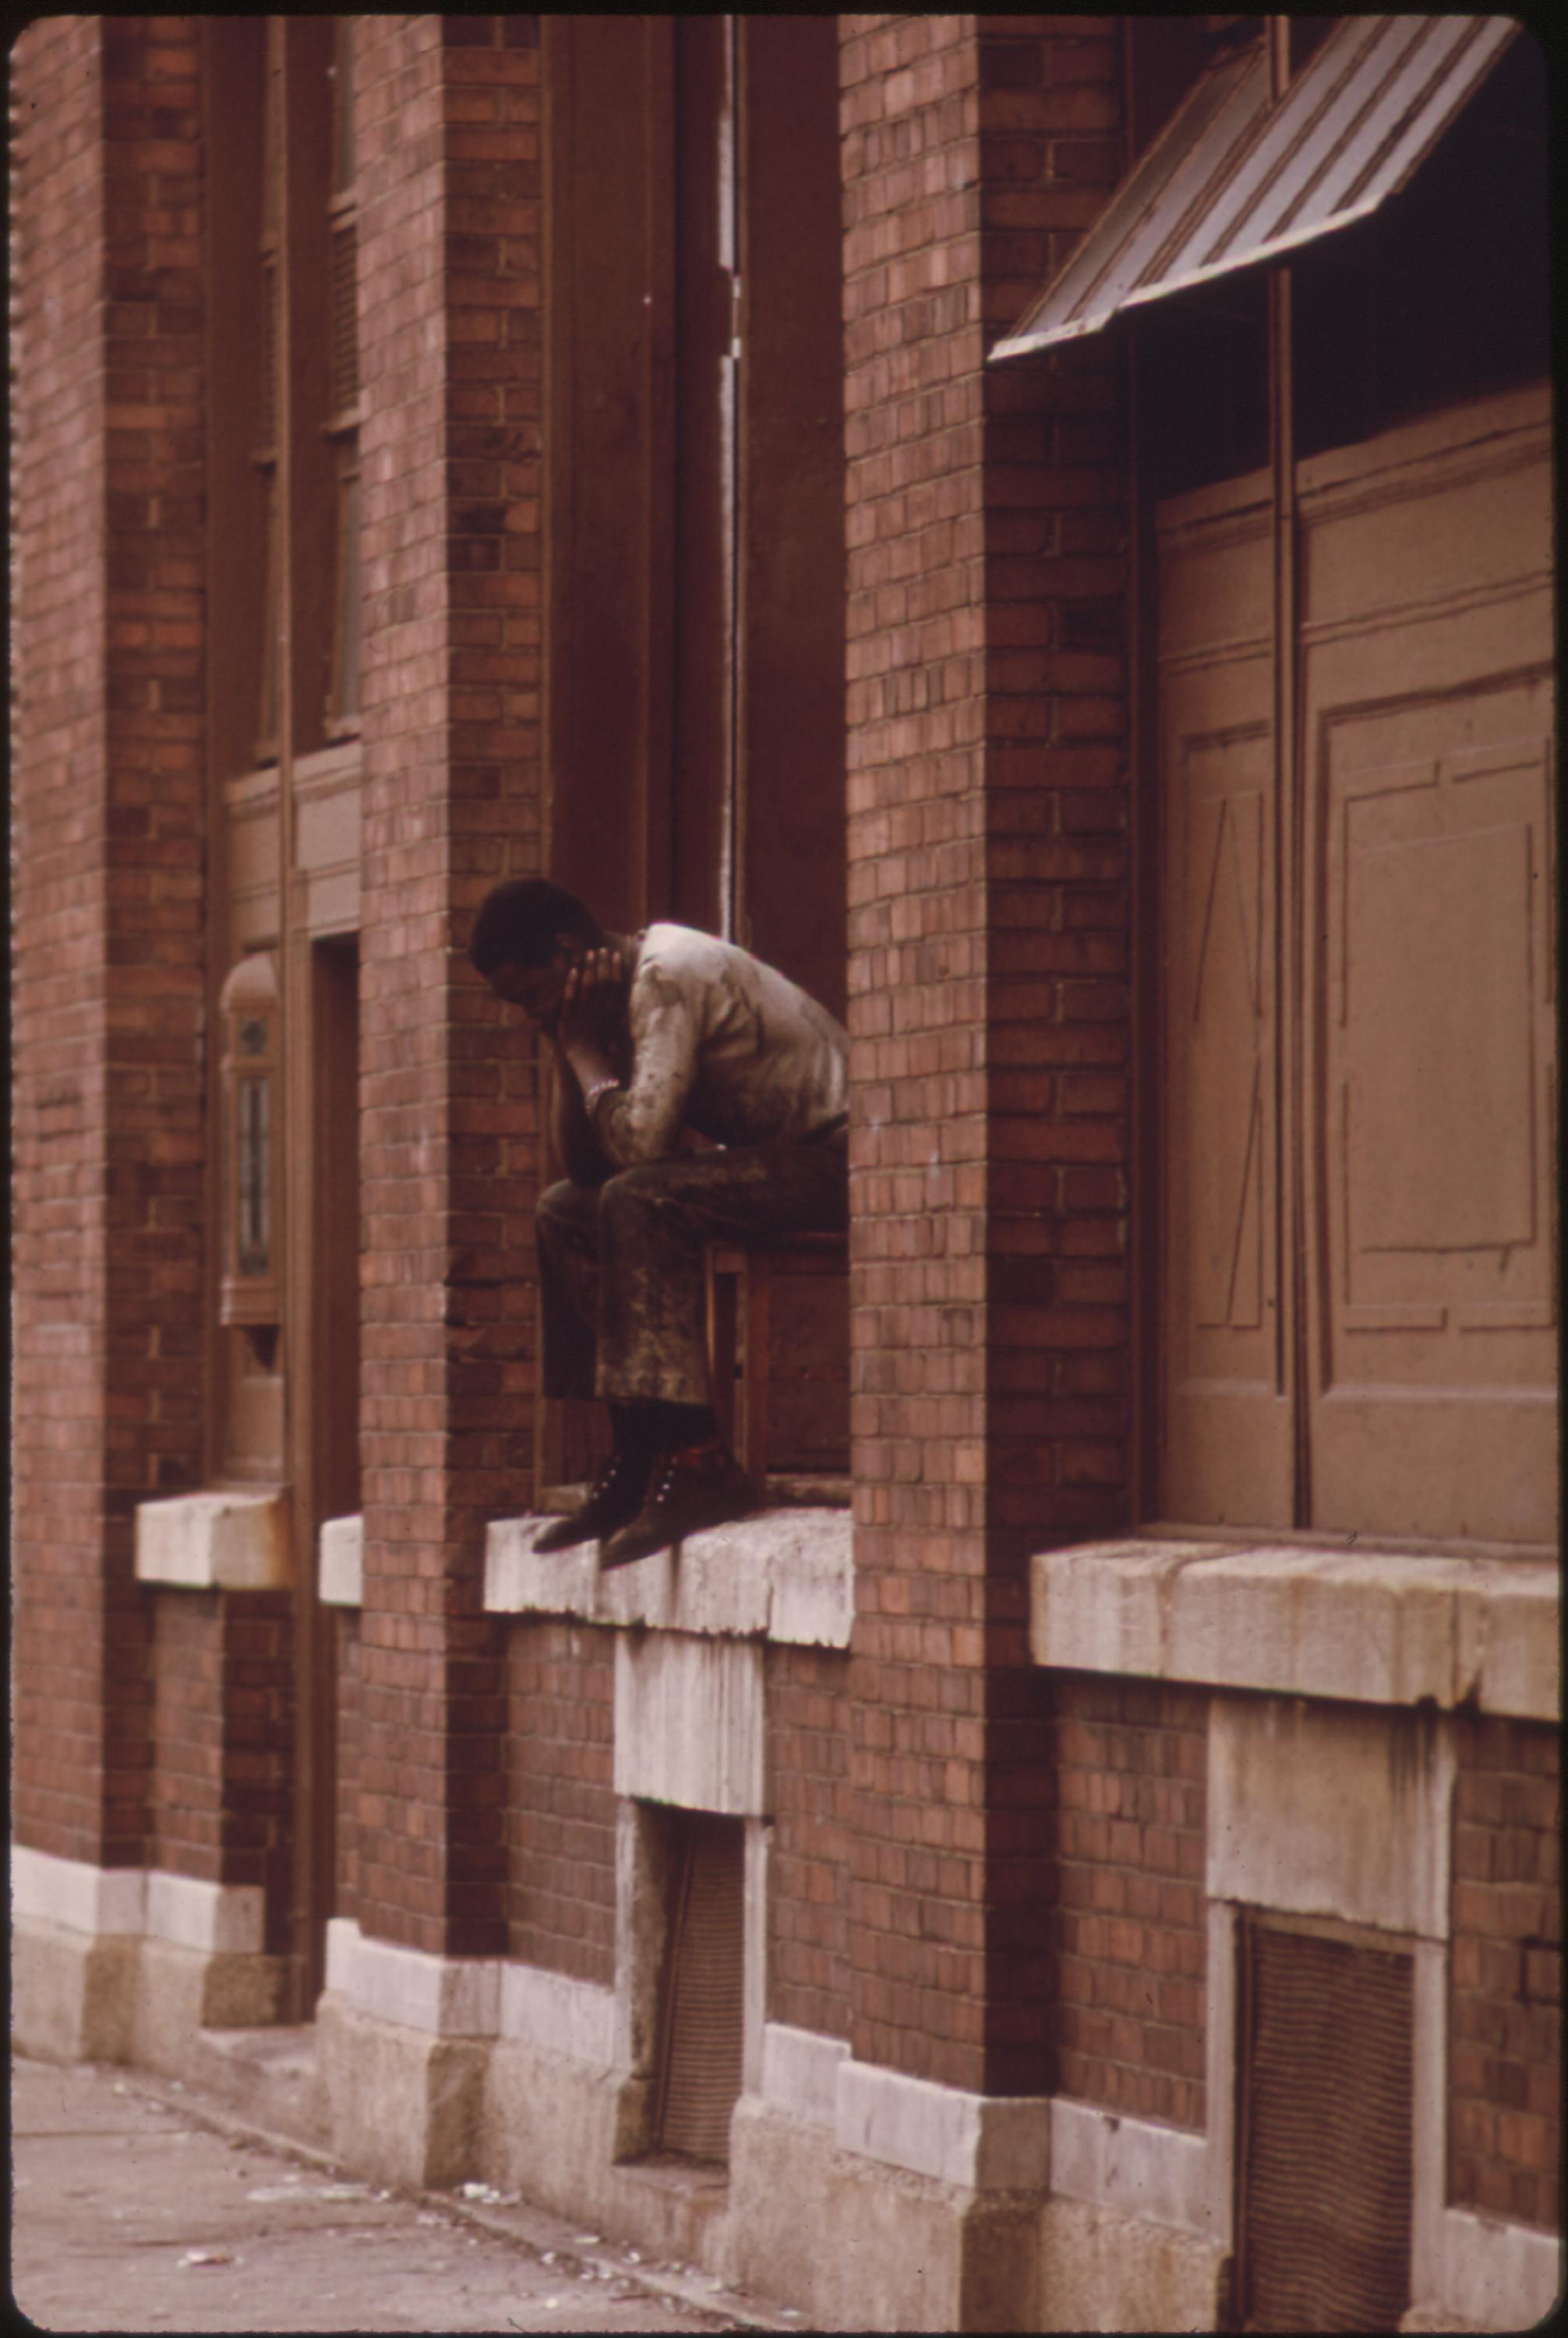 07:1973  Original Caption: A Black Man Who is Jobless Sits on the Windowsill of a Building in a High Crime Area on Chicago's South Side, He Has Nothing to Do and Nowhere to Go John H. White